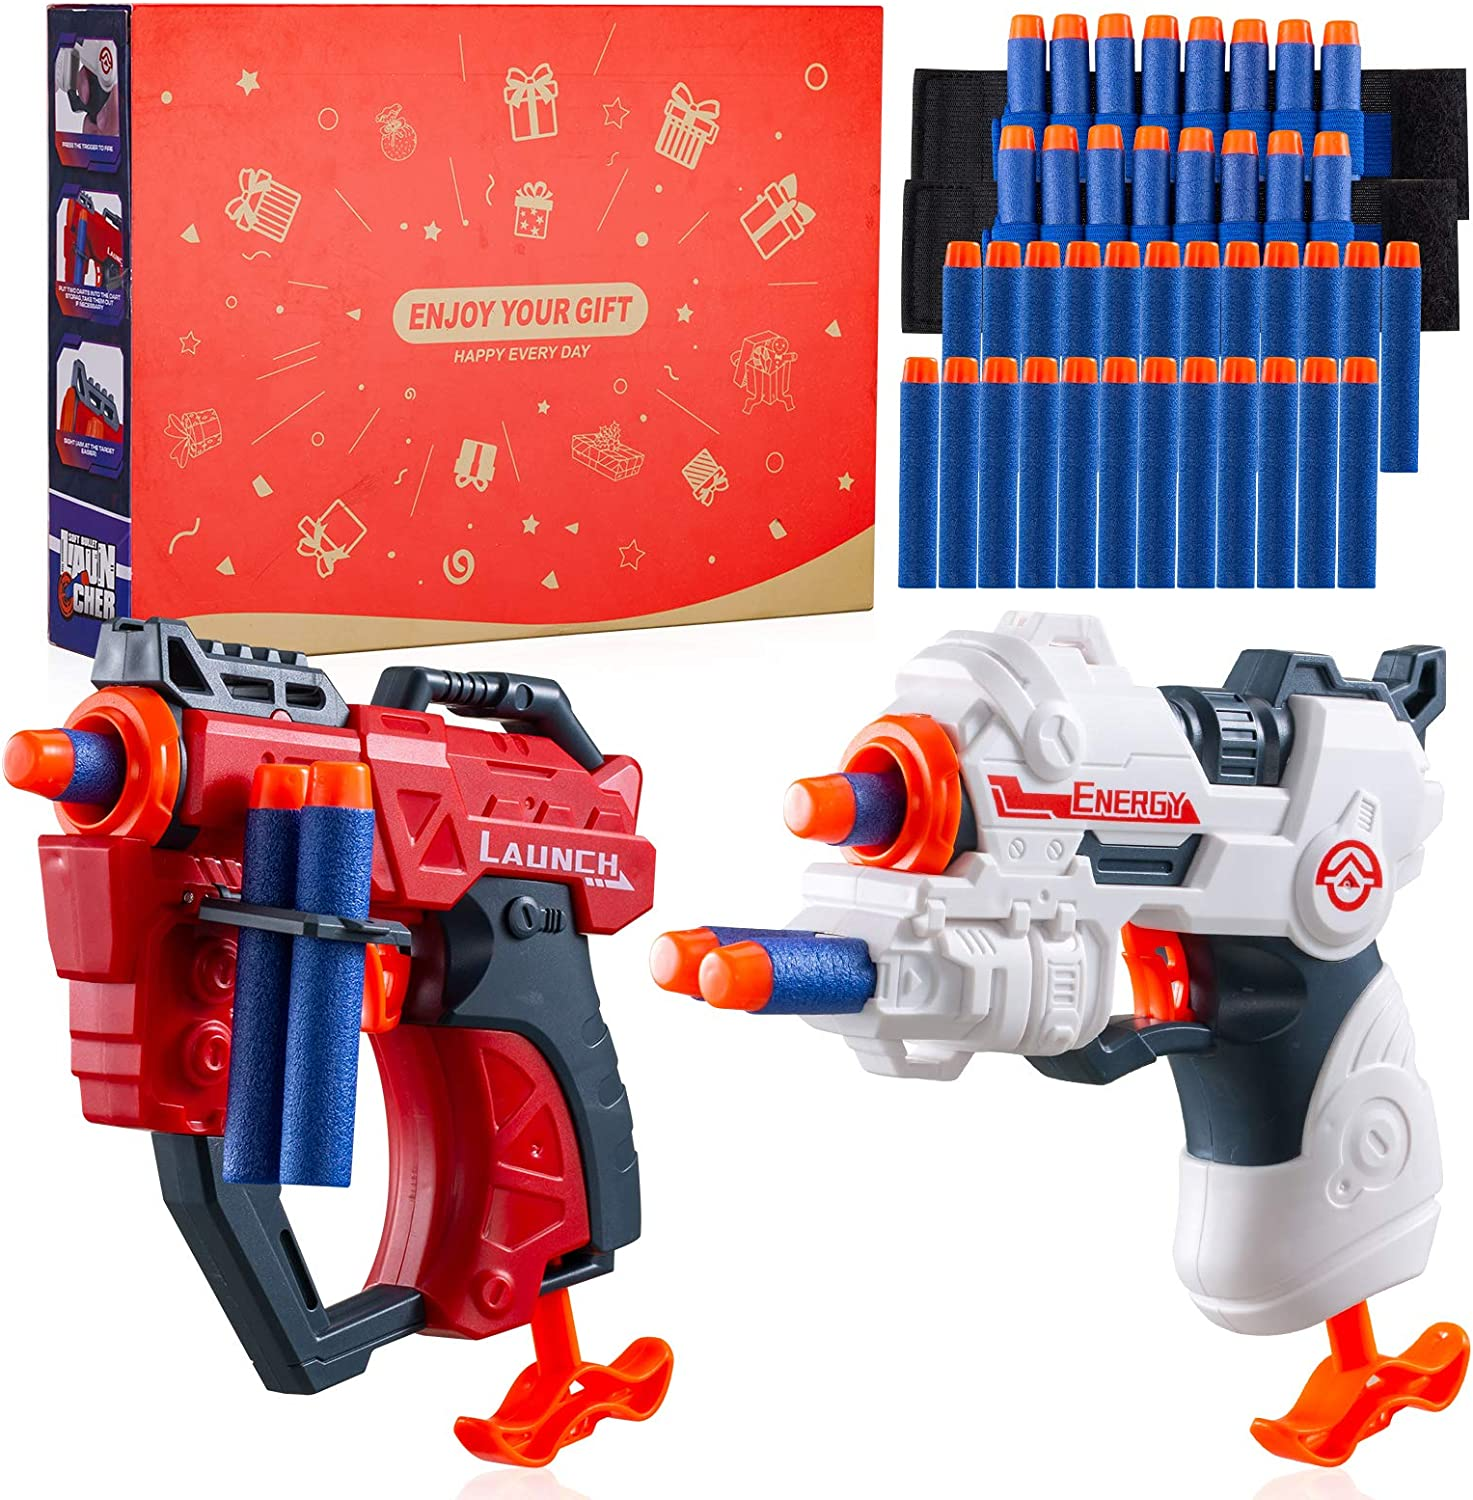 50% Off Coupon – Toy Foam Blasters Gun With 40 Soft Foam Darts and Wrist Bands